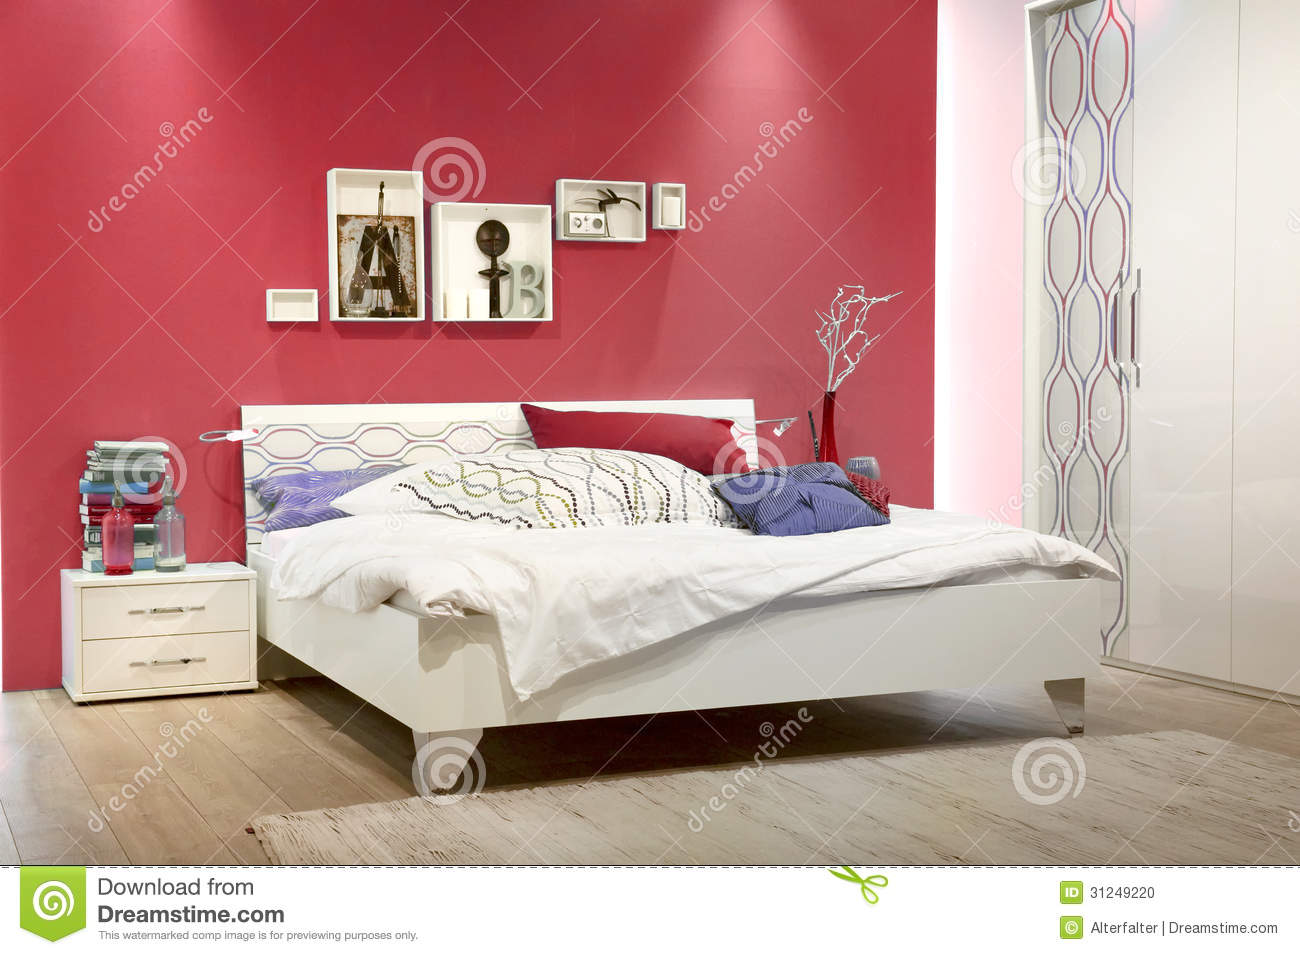 chambre coucher blanche avec le mur rouge photo stock image 31249220. Black Bedroom Furniture Sets. Home Design Ideas